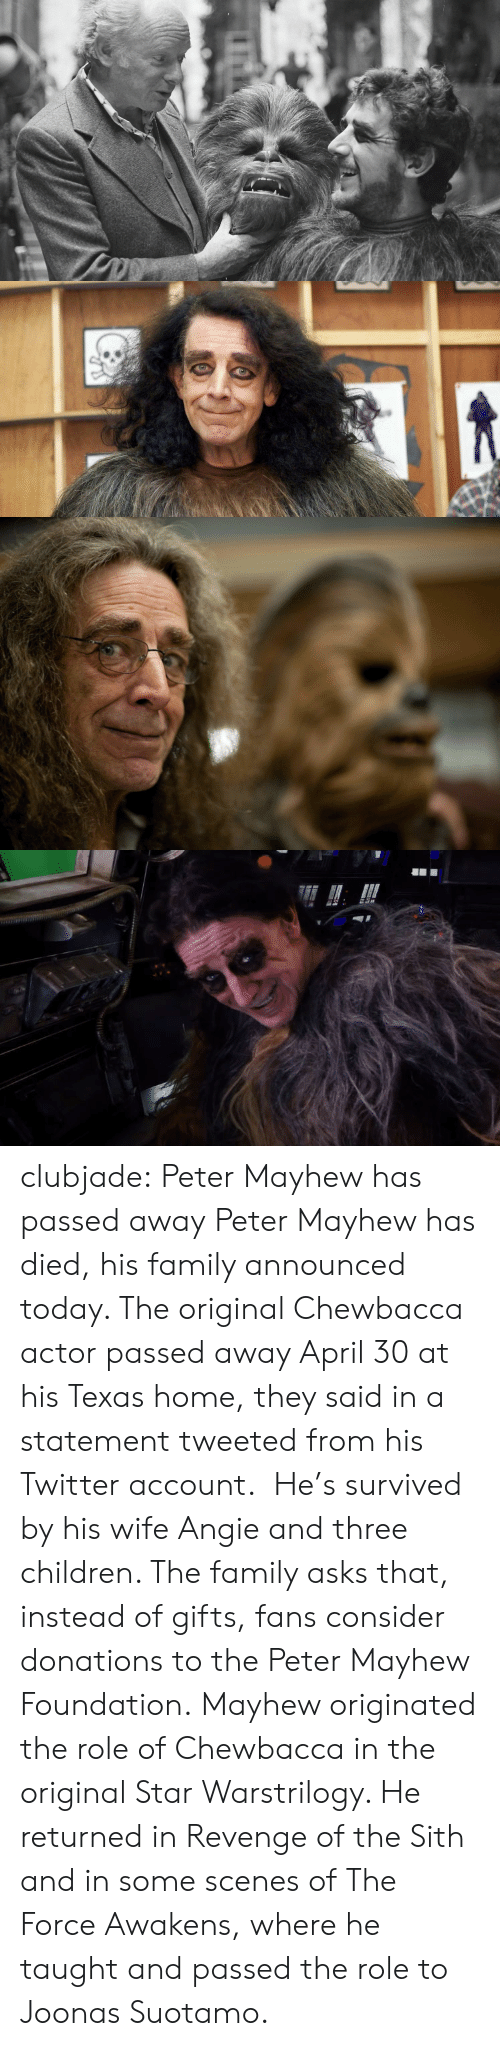 Chewbacca, Children, and Family: clubjade:  Peter Mayhew has passed away Peter Mayhew has died, his family announced today. The original Chewbacca actor passed away April 30 at his Texas home, they said in a statement tweeted from his Twitter account.  He's survived by his wife Angie and three children. The family asks that, instead of gifts, fans consider donations to the Peter Mayhew Foundation. Mayhew originated the role of Chewbacca in the original Star Warstrilogy. He returned in Revenge of the Sith and in some scenes of The Force Awakens, where he taught and passed the role to Joonas Suotamo.